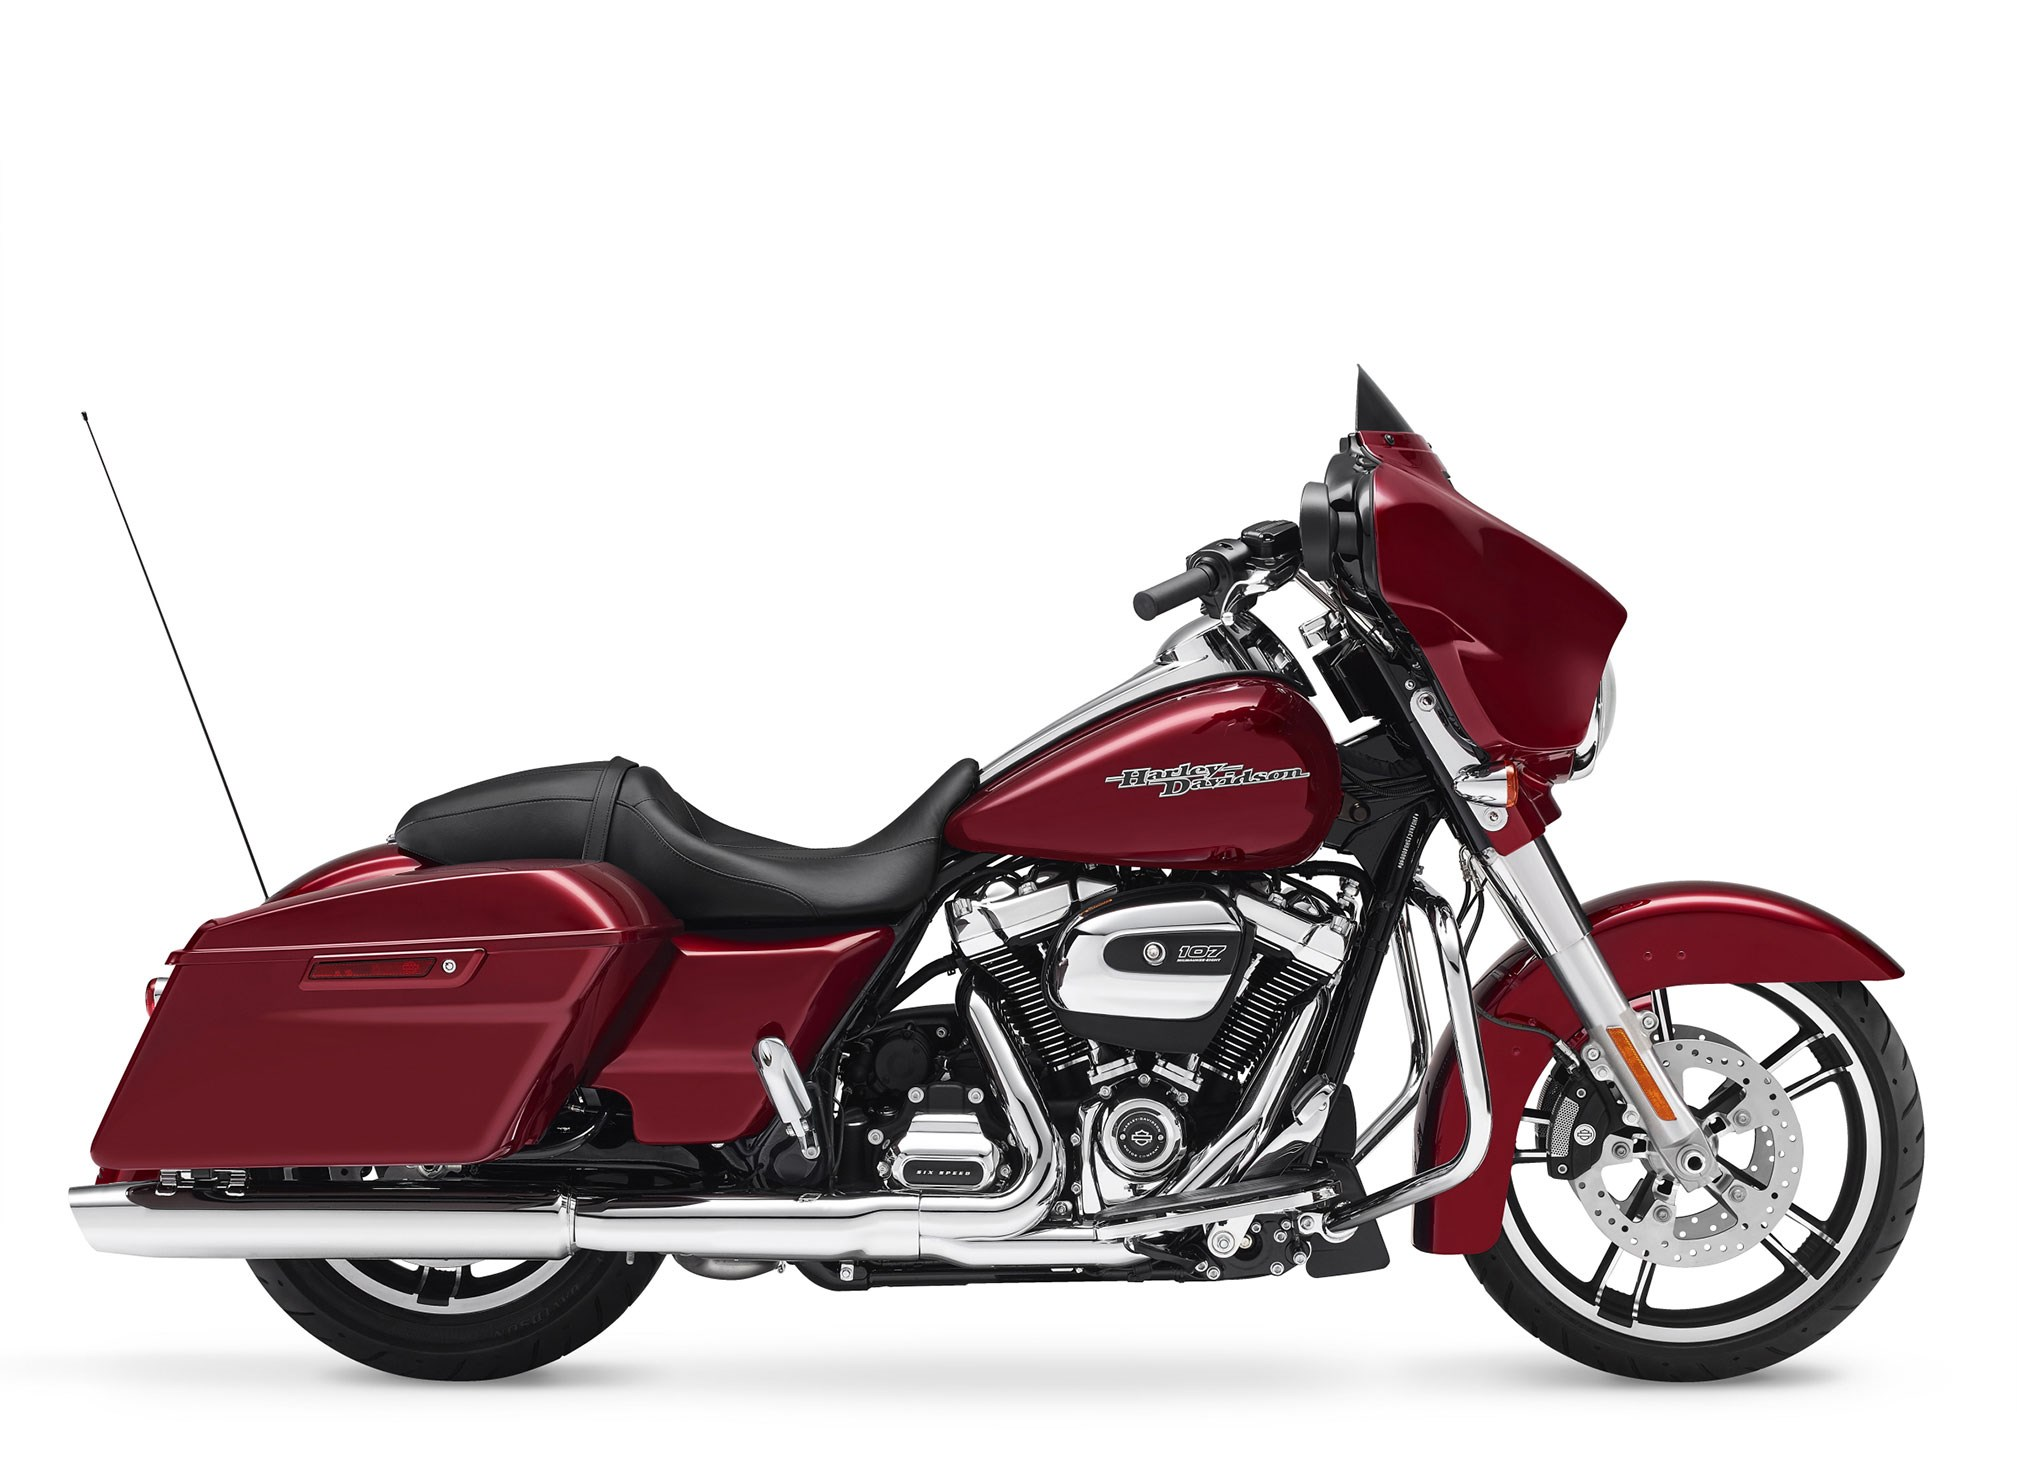 2017x1478 - Harley-Davidson Electra Glide Ultra Classic Wallpapers 33